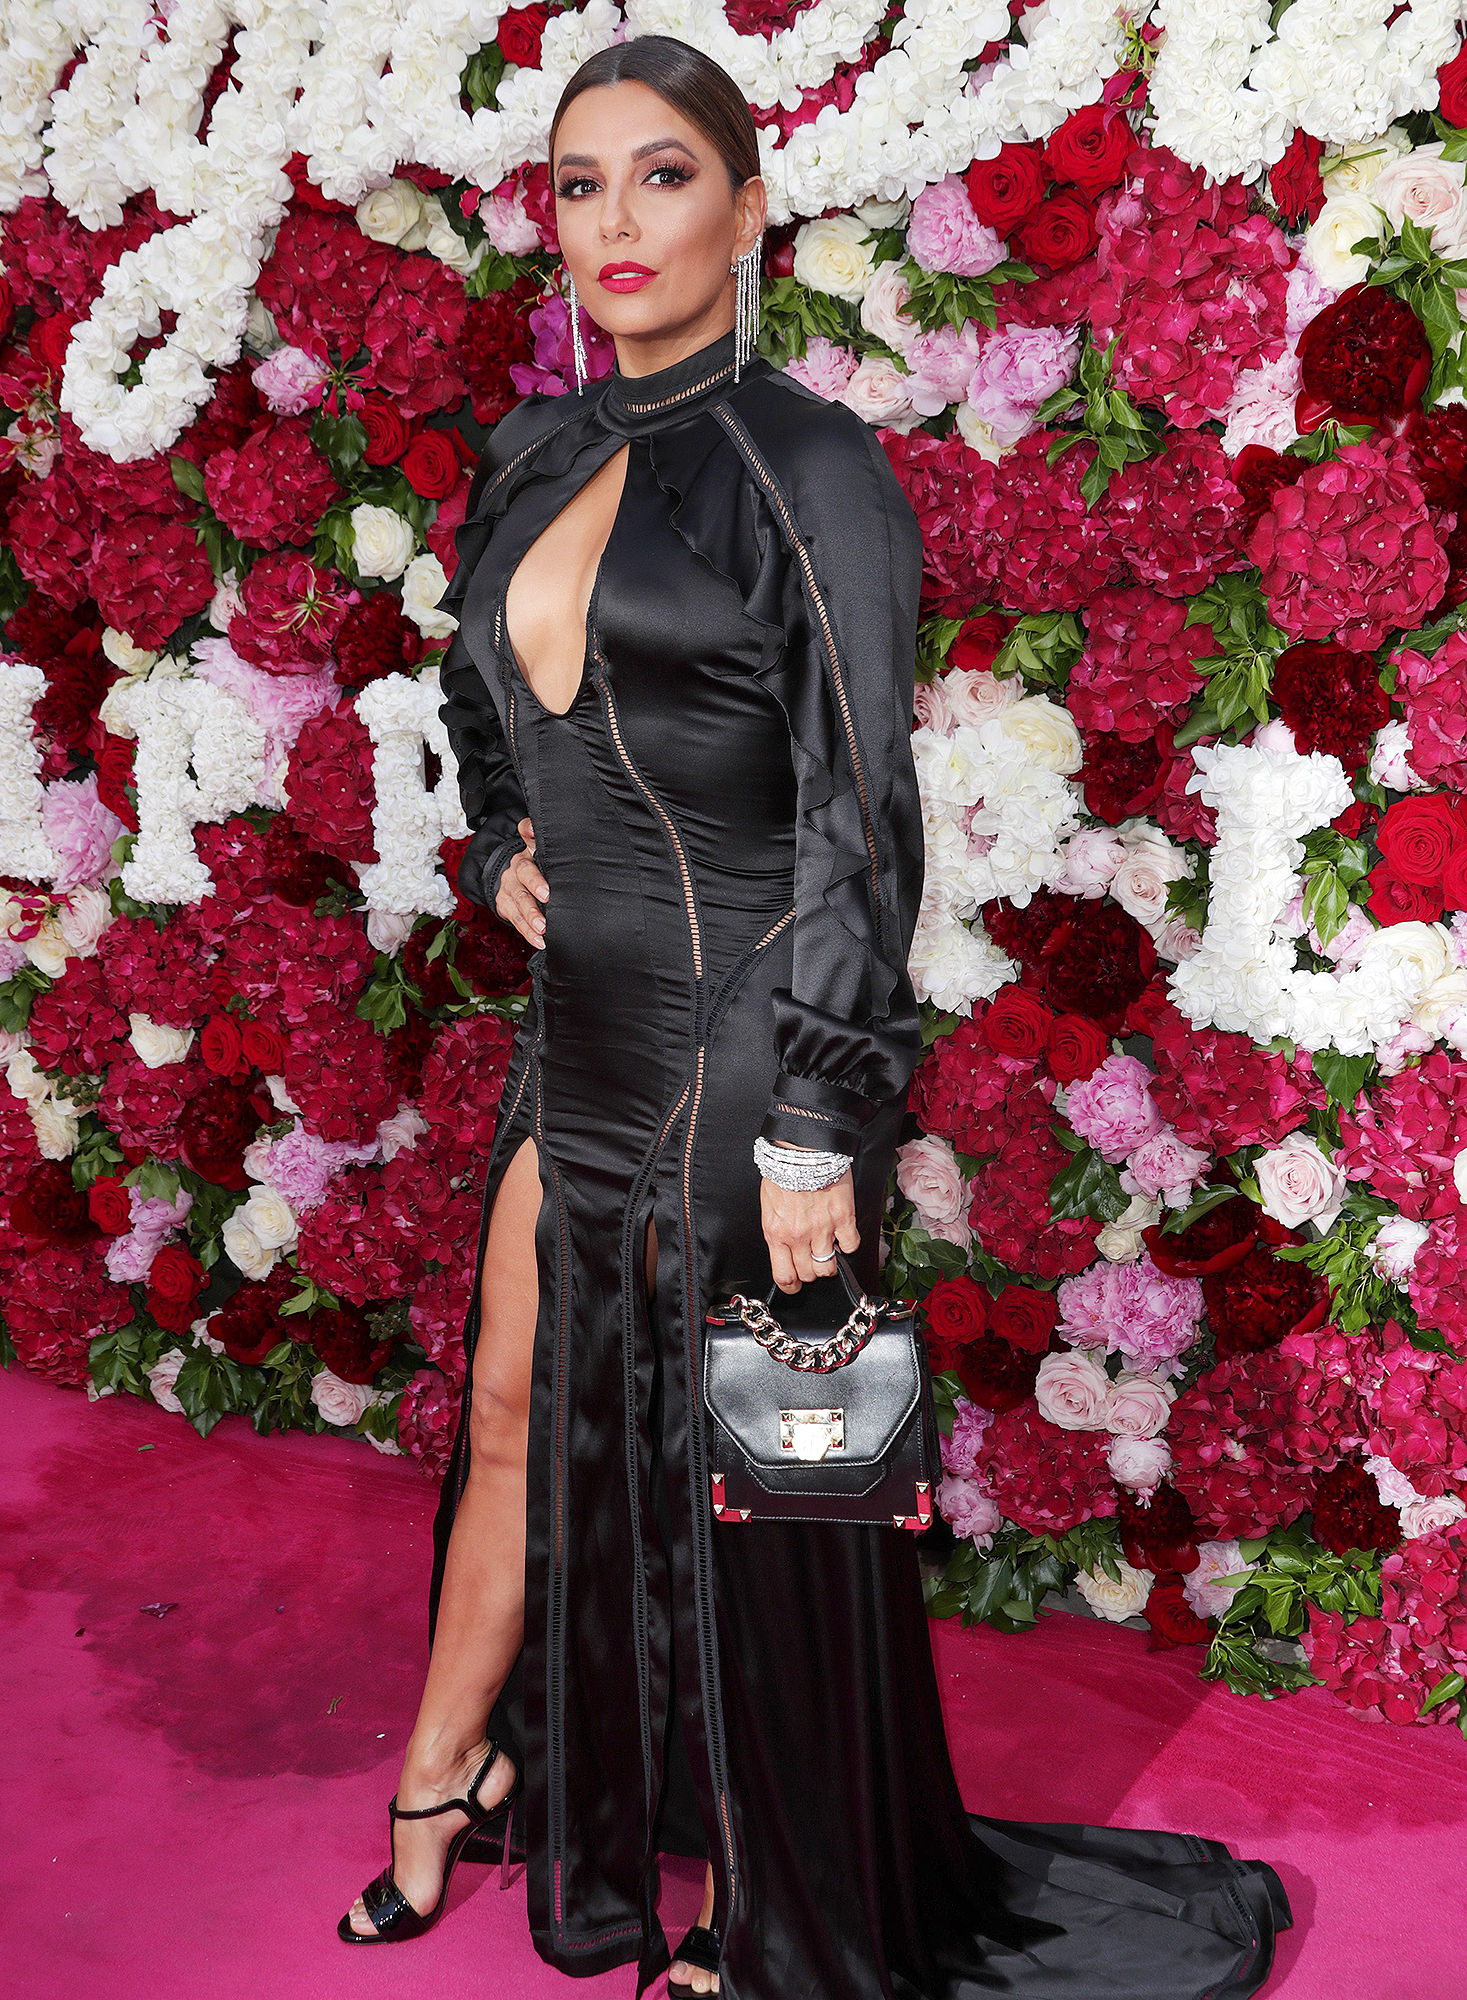 Philipp Plein Resort Collection, Arrivals, 70th Cannes Film Festival, France - 24 May 2017